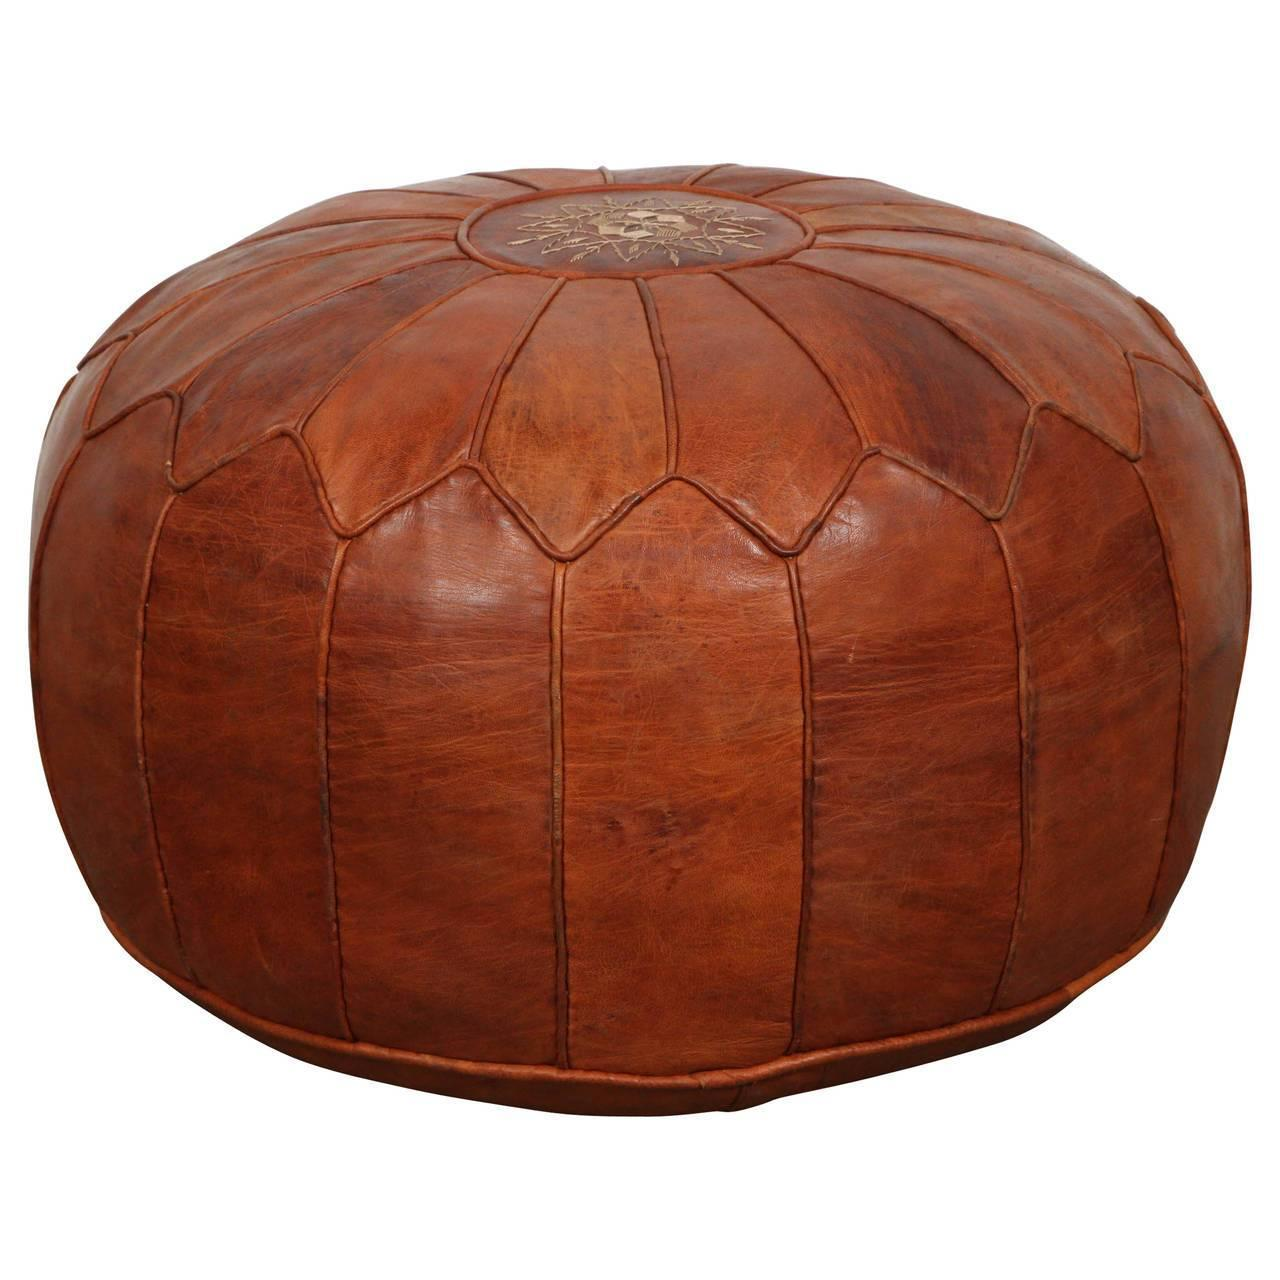 Pouf Vintage Large Vintage Moroccan Leather Pouf